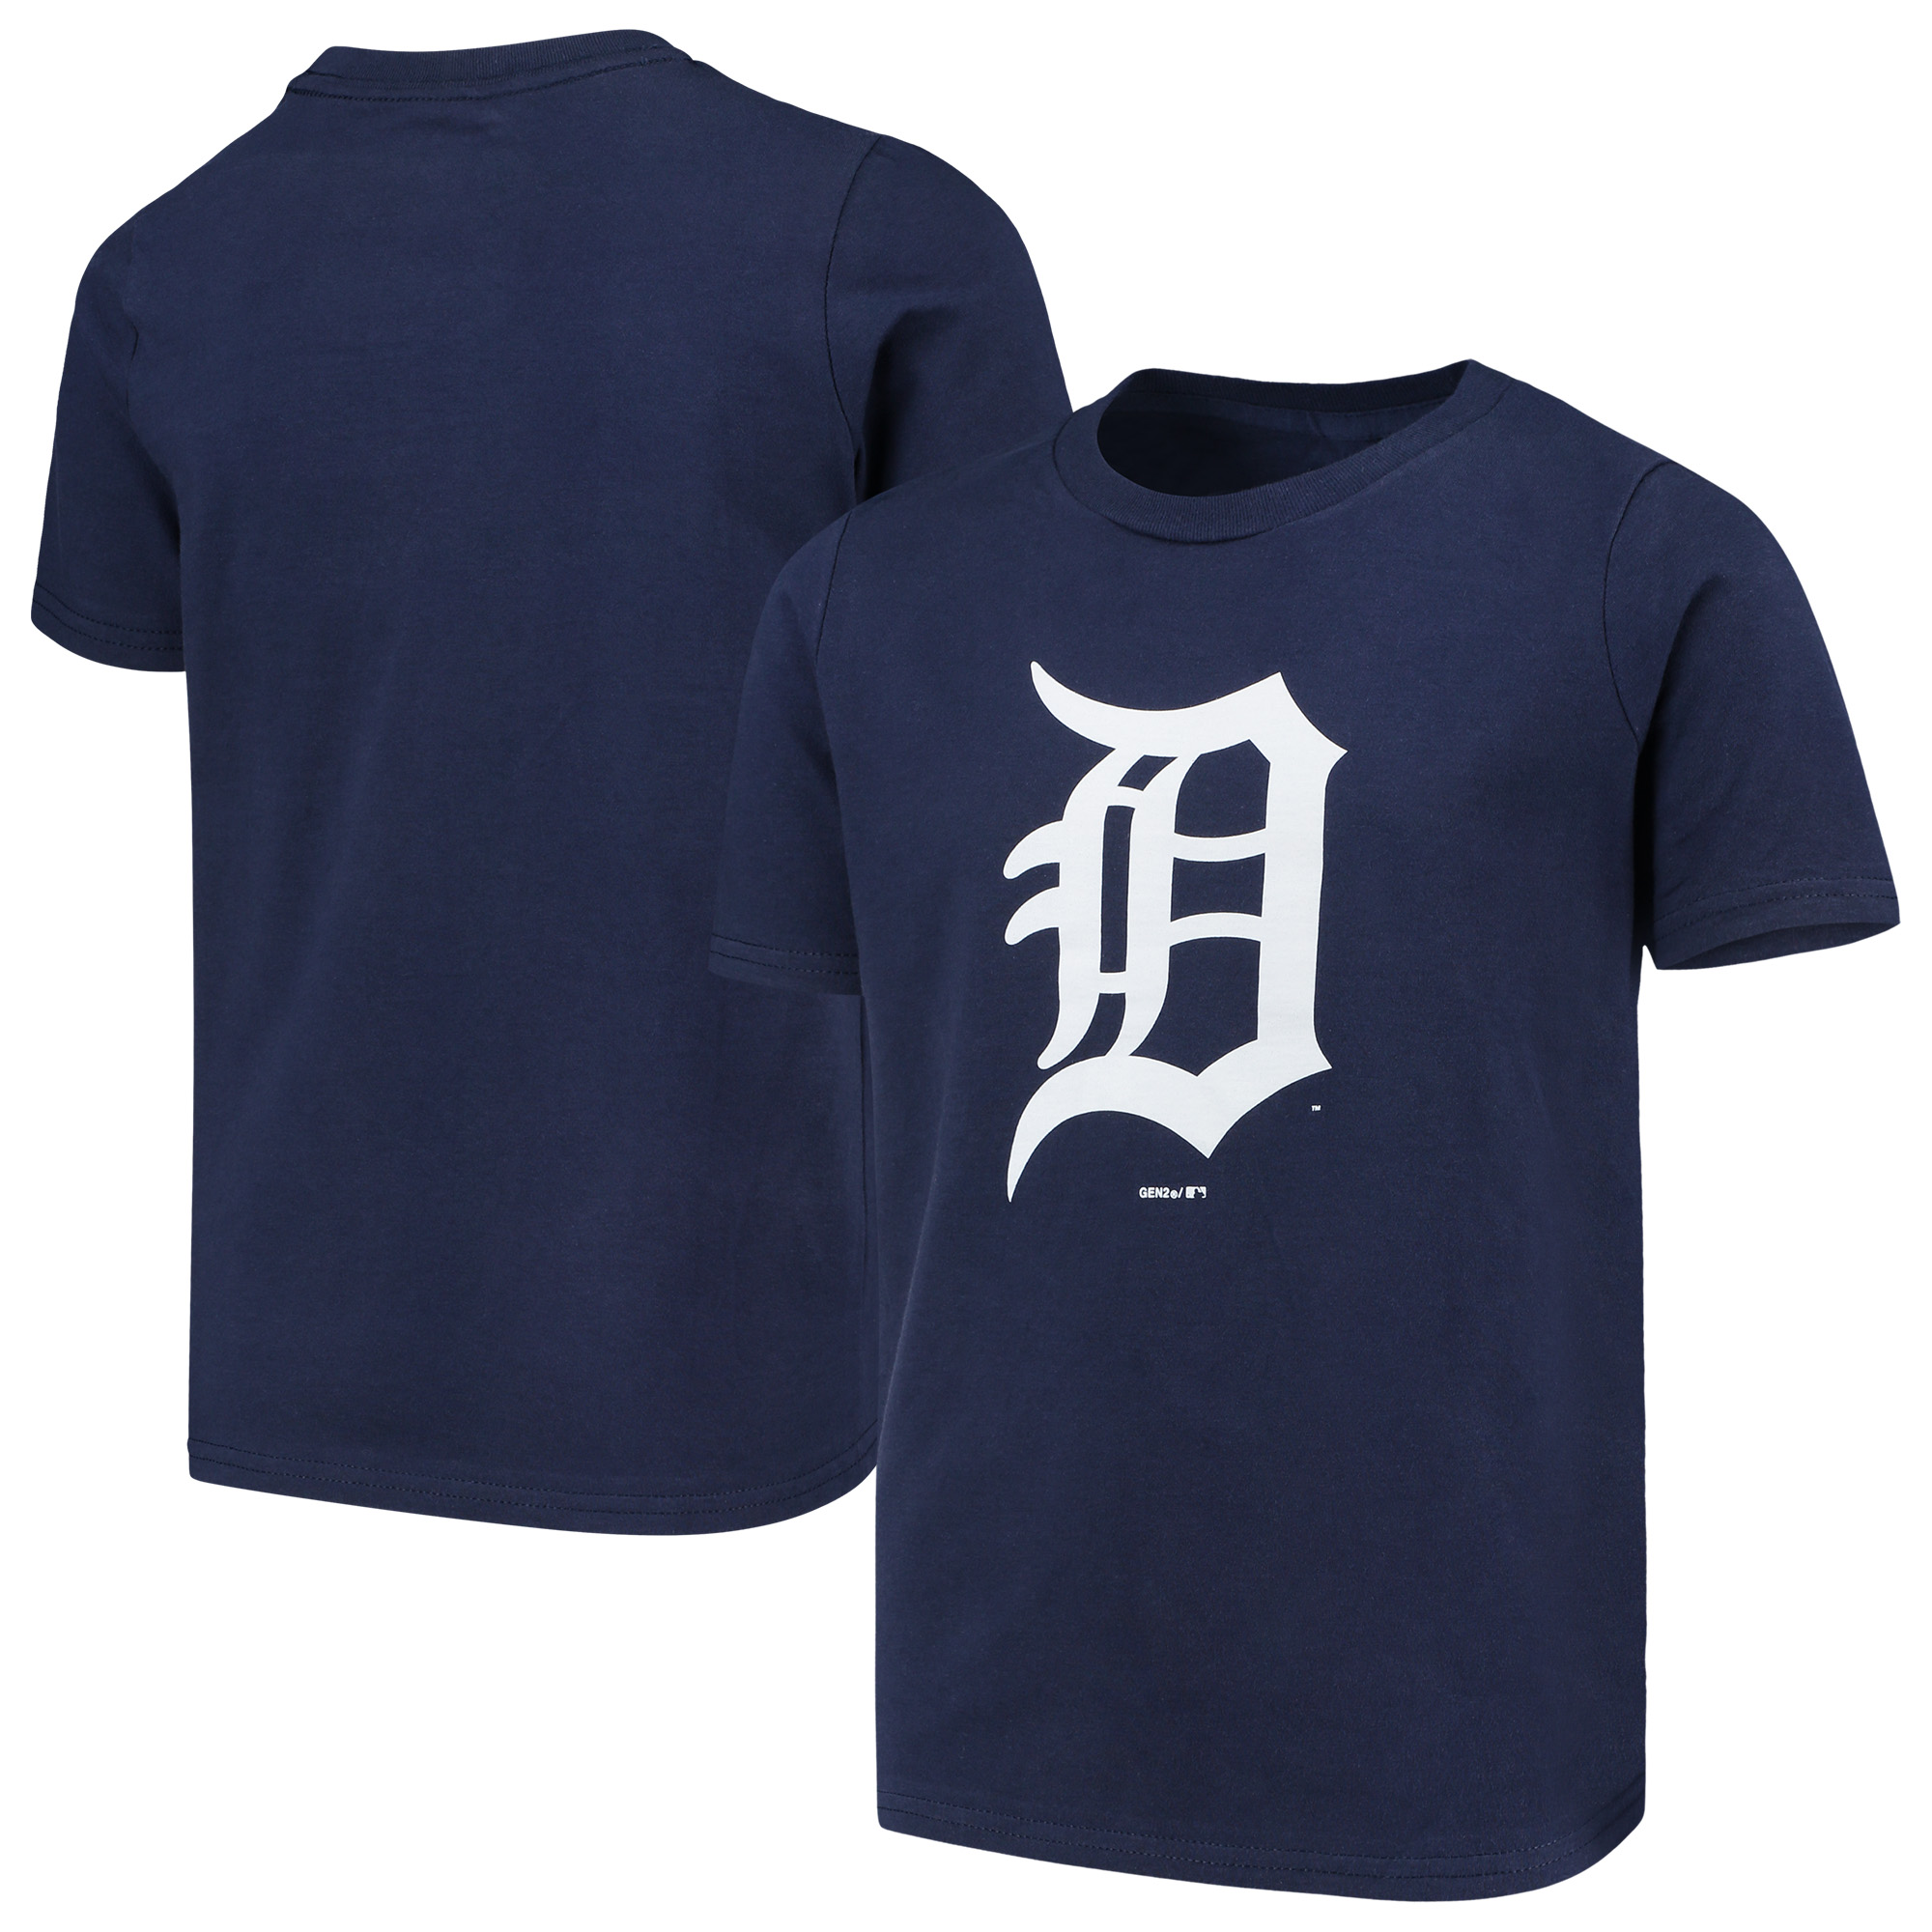 Detroit Tigers Youth Primary Team Logo T-Shirt - Navy